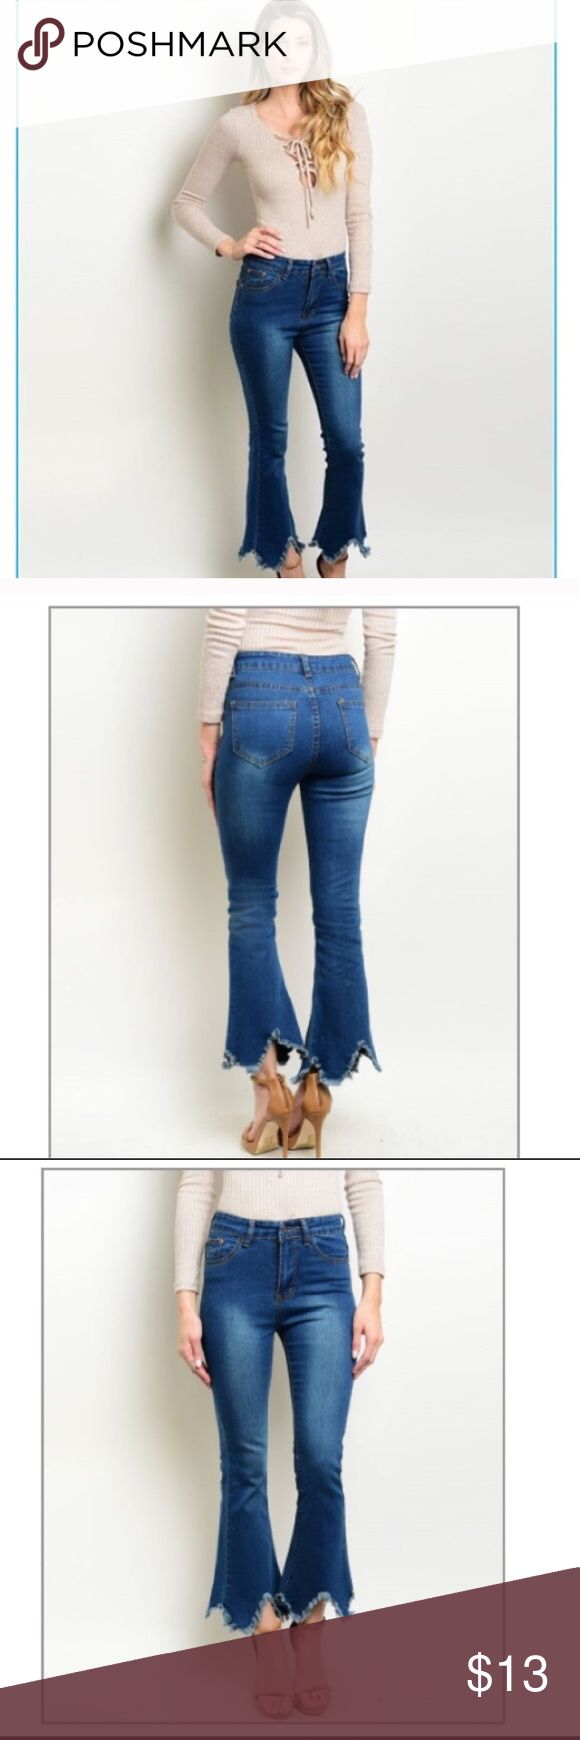 Shredded Denims! These class blue jeans have their own style with a shredded bottom. Pants came in size 01, 03, etc. size 01 fits size 25/26 size 03 fits size 27/28. I have one of each left in stock. Price is marked super low! Tea n Cup Jeans Flare & Wide Leg